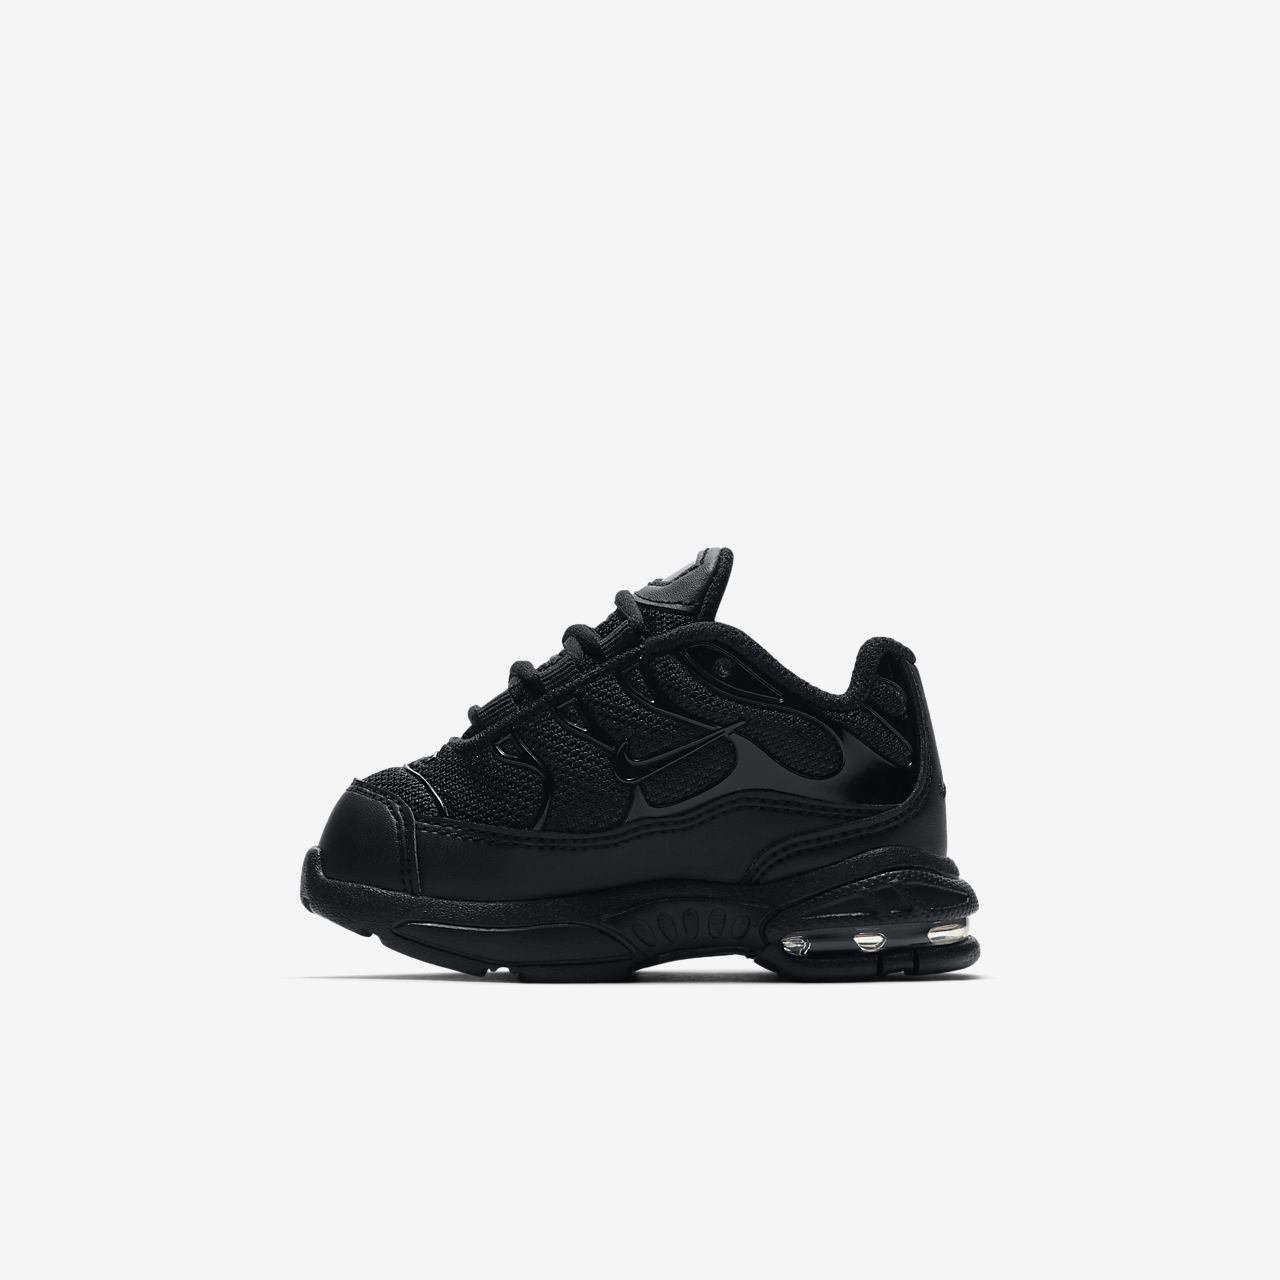 Nike Little Air Max Plus Schoen voor baby's/peuters